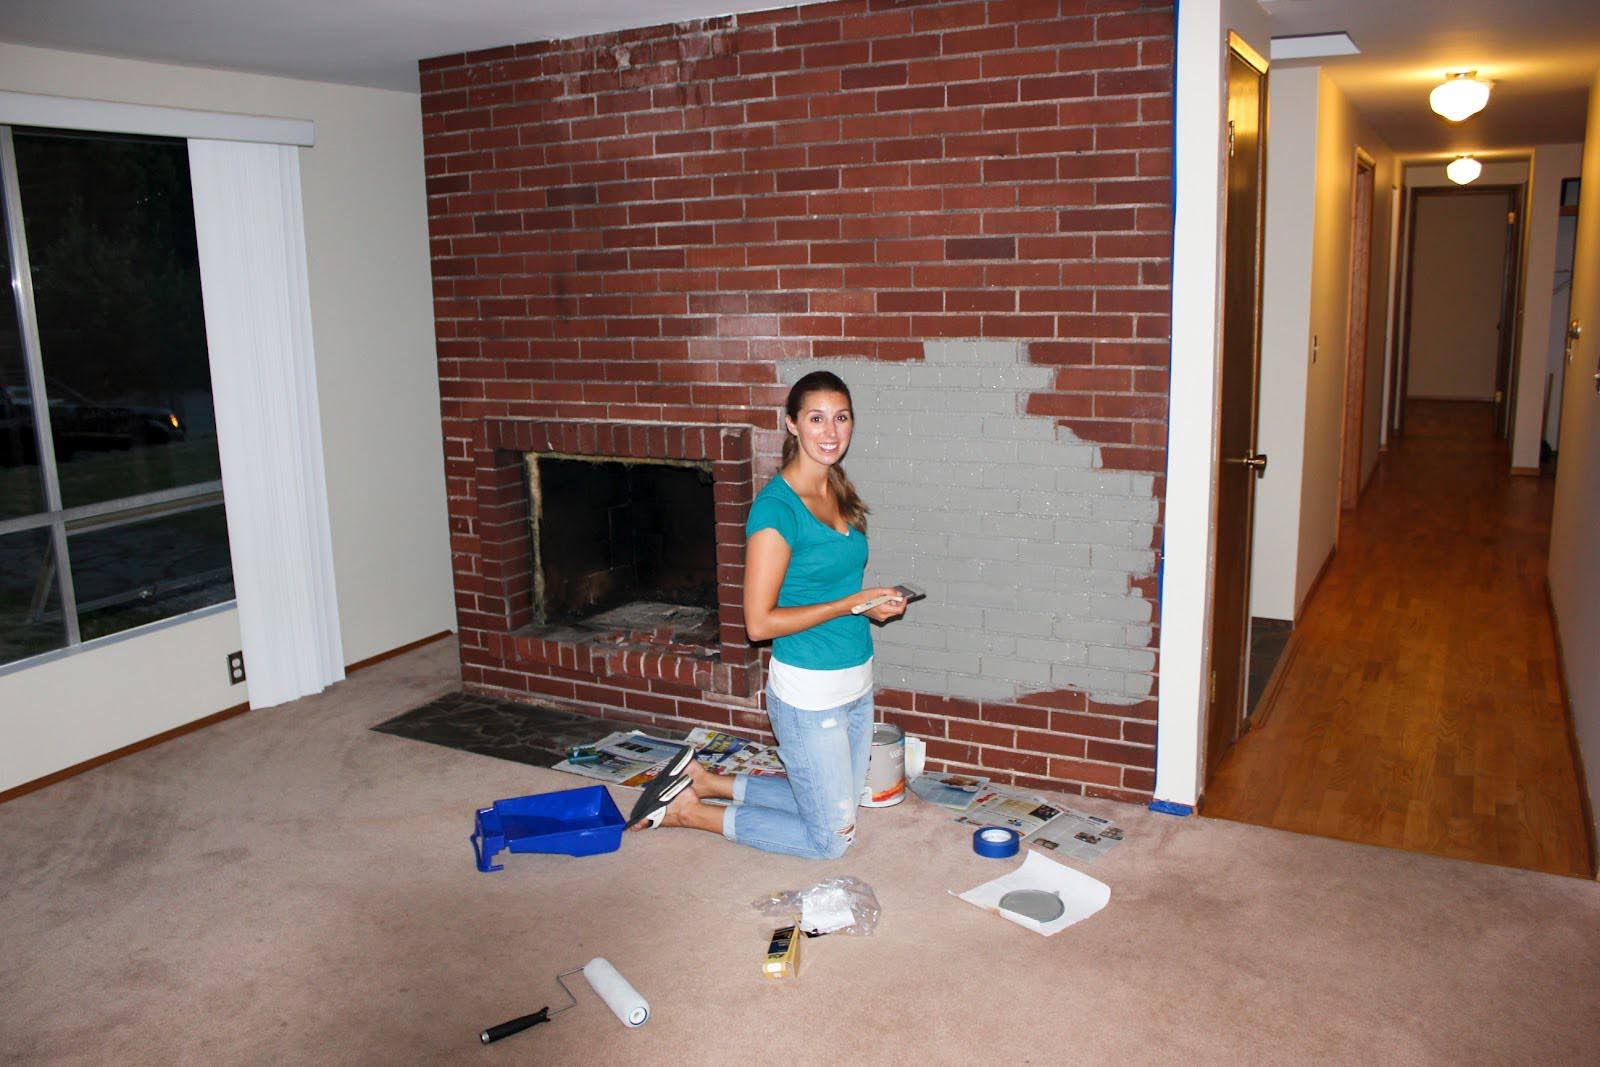 paint colors brick fireplace fireplace designs. Black Bedroom Furniture Sets. Home Design Ideas